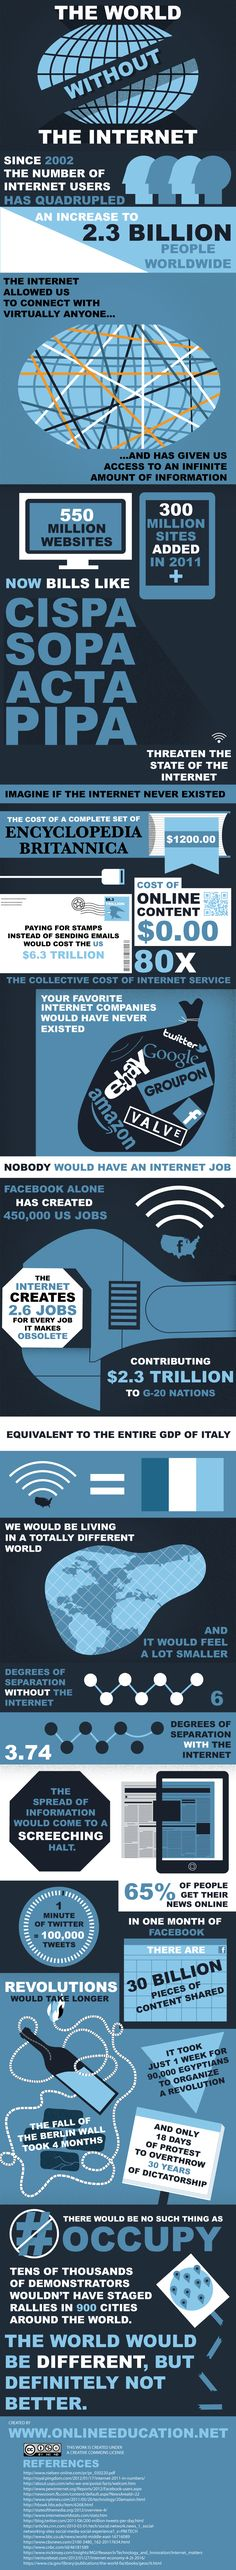 Ever Imagined a World Without Internet? [INFOGRAPHIC]